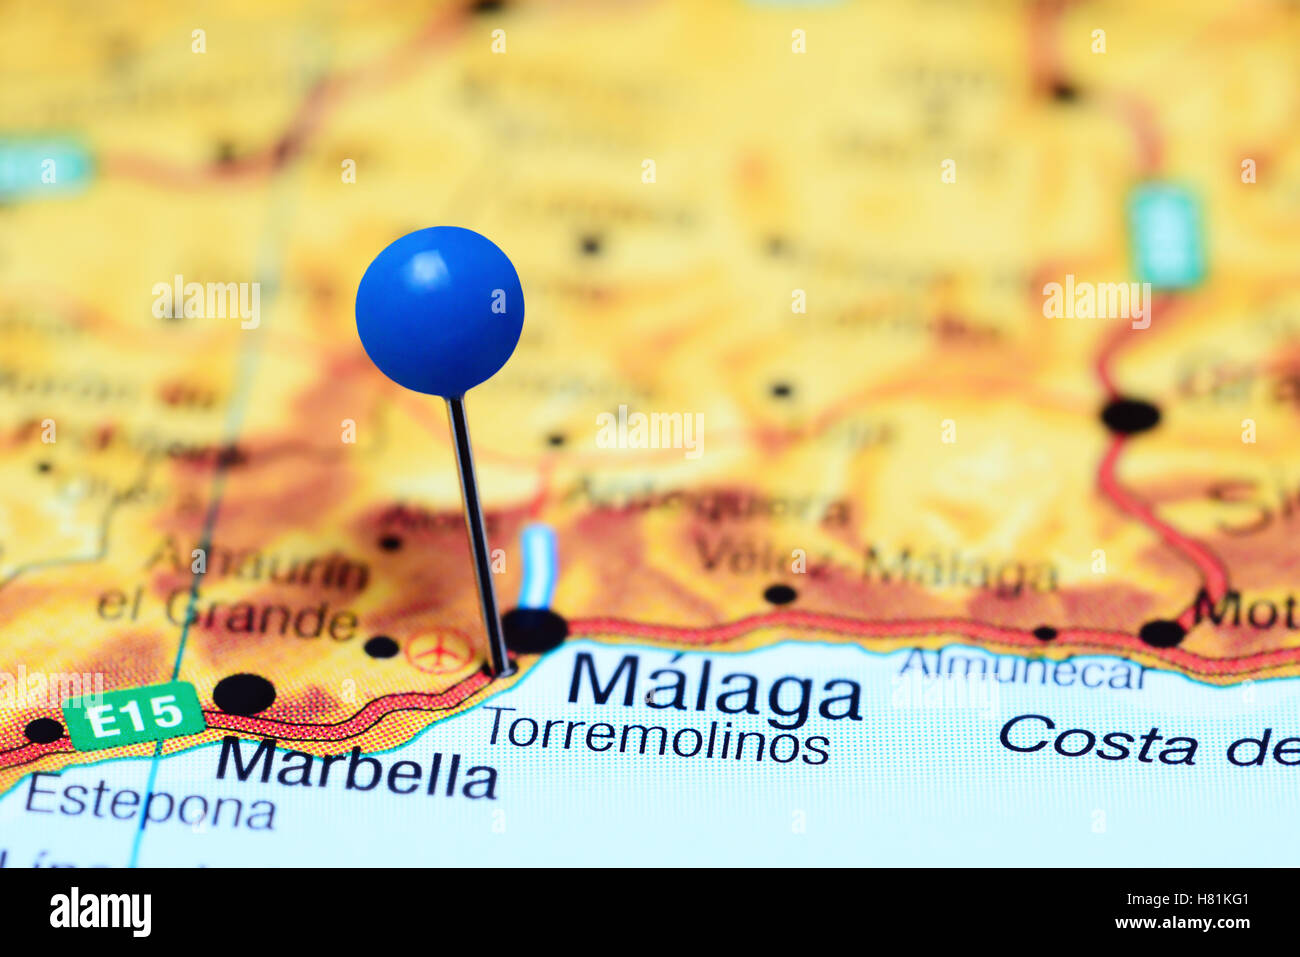 Torremolinos pinned on a map of Spain Stock Photo Royalty Free